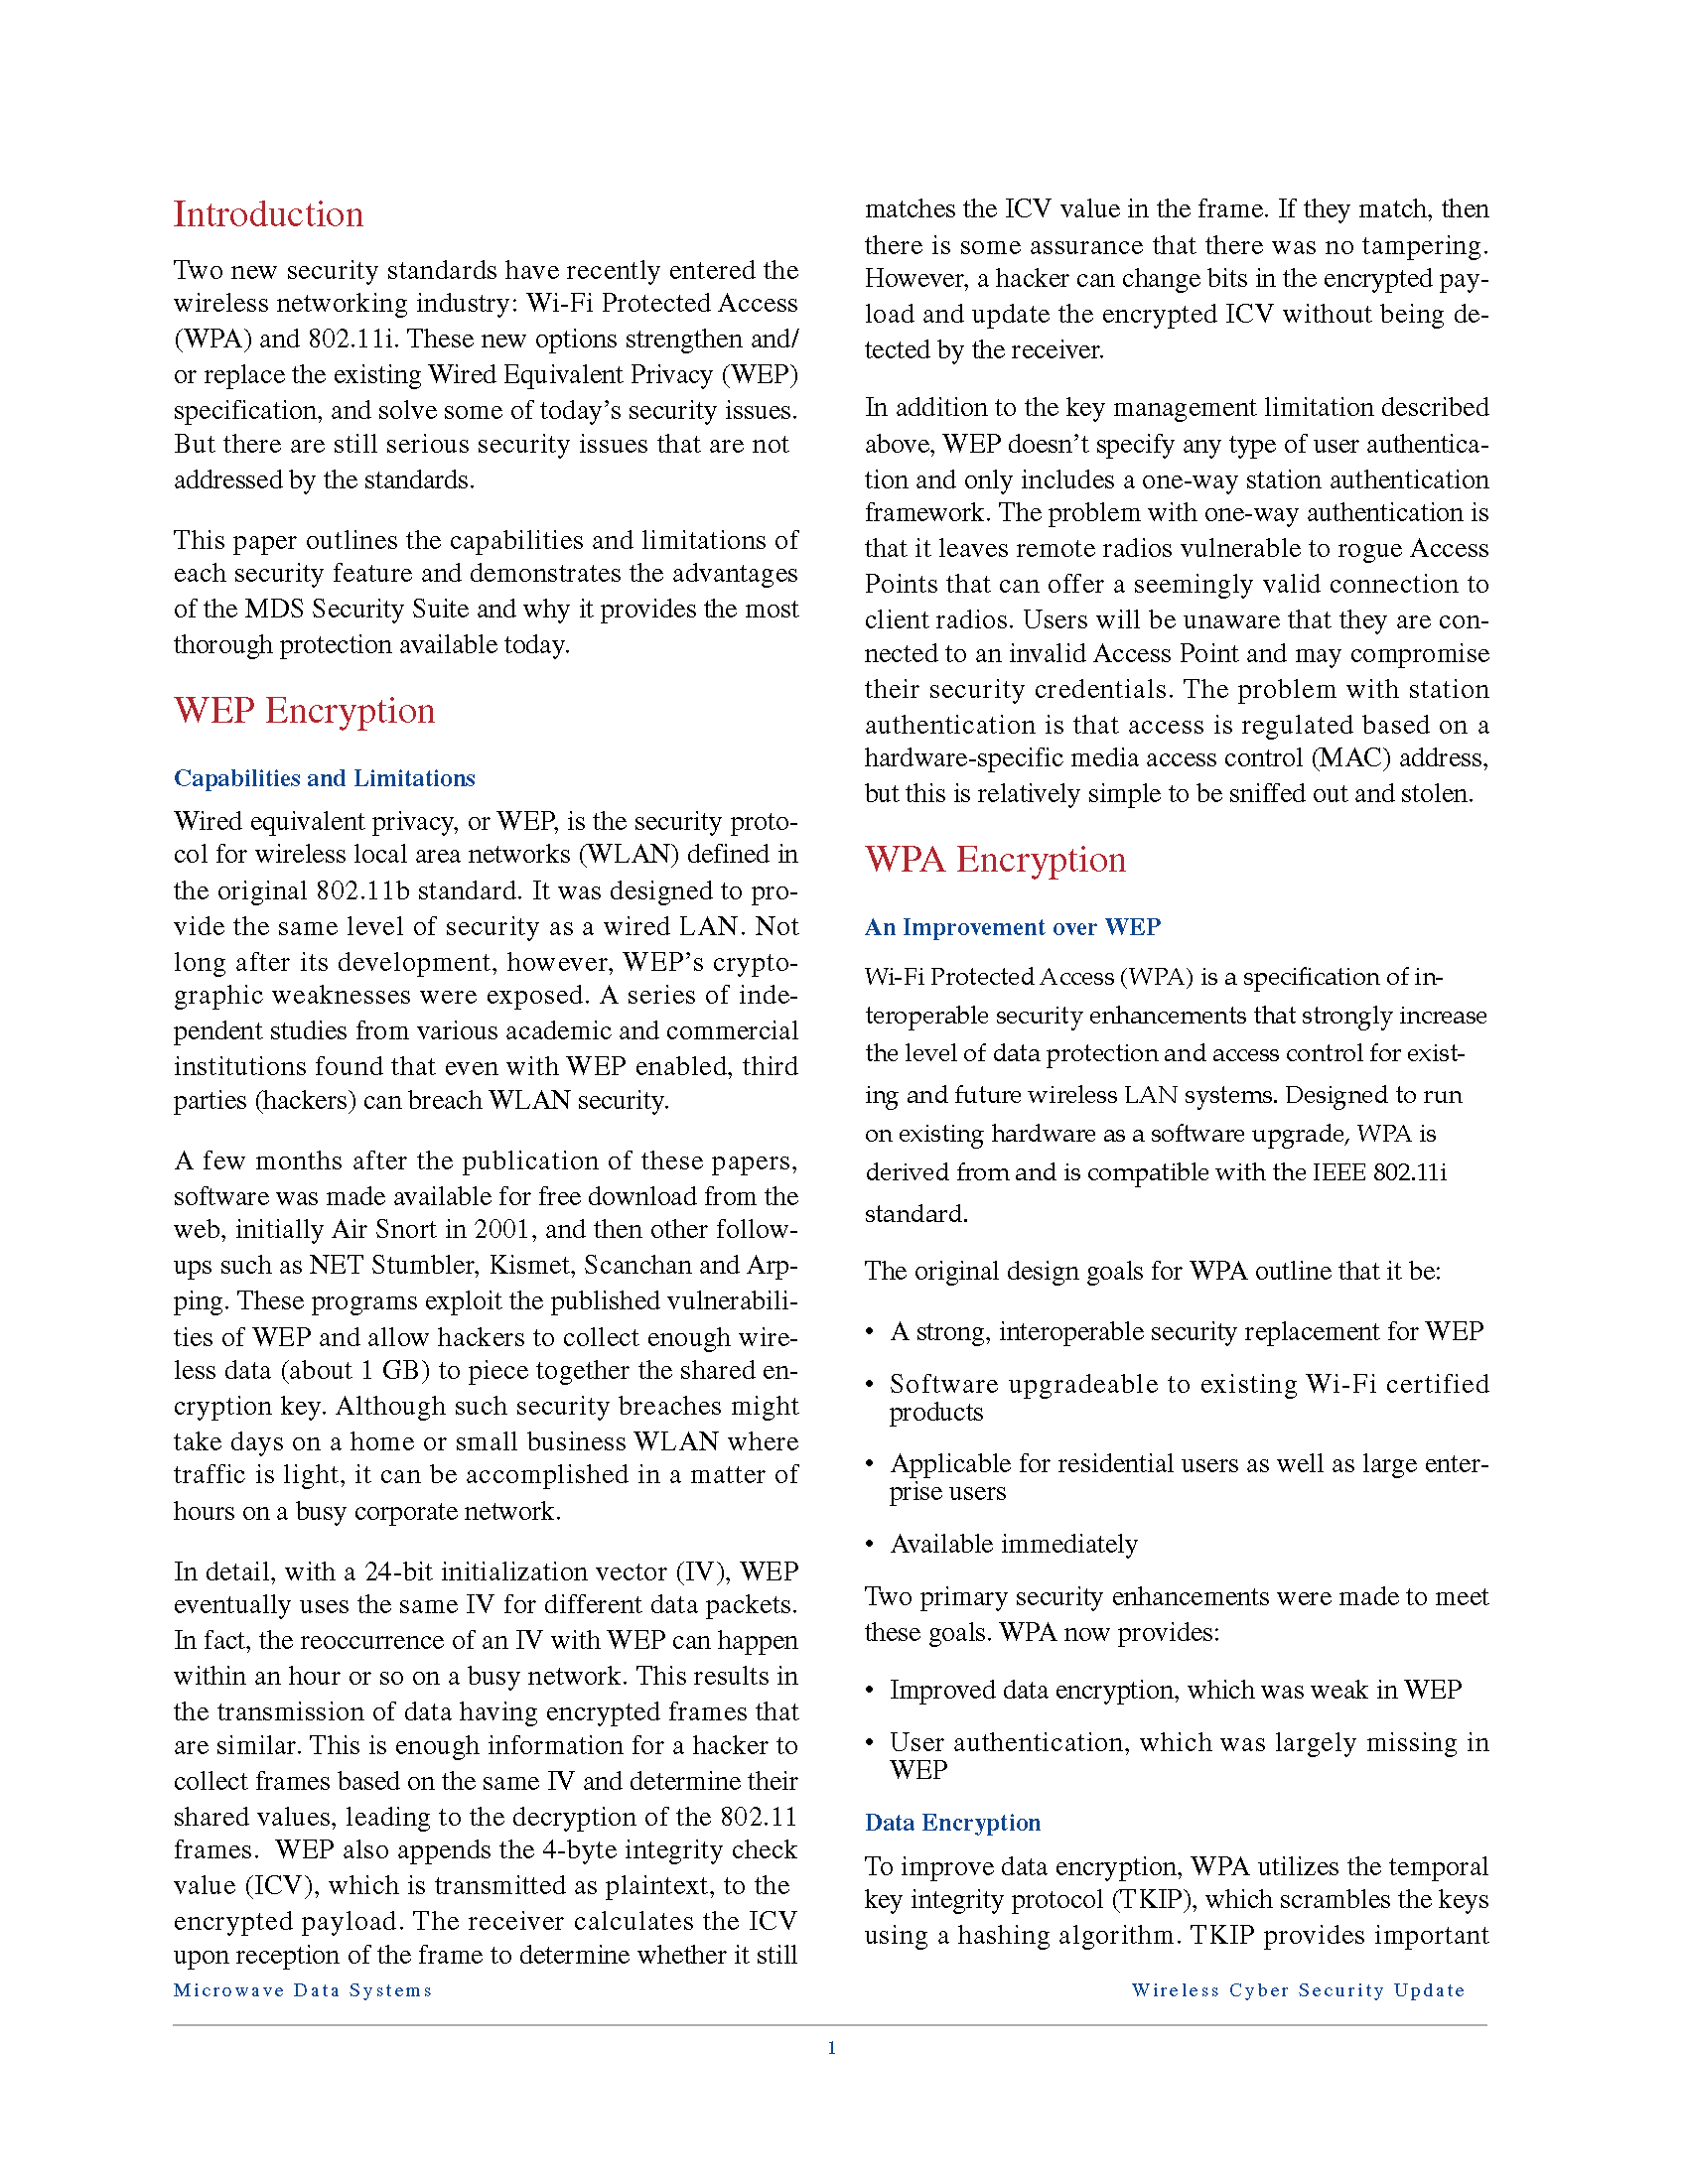 MDSWireless_Cyber_Security_Update_Page_2.png